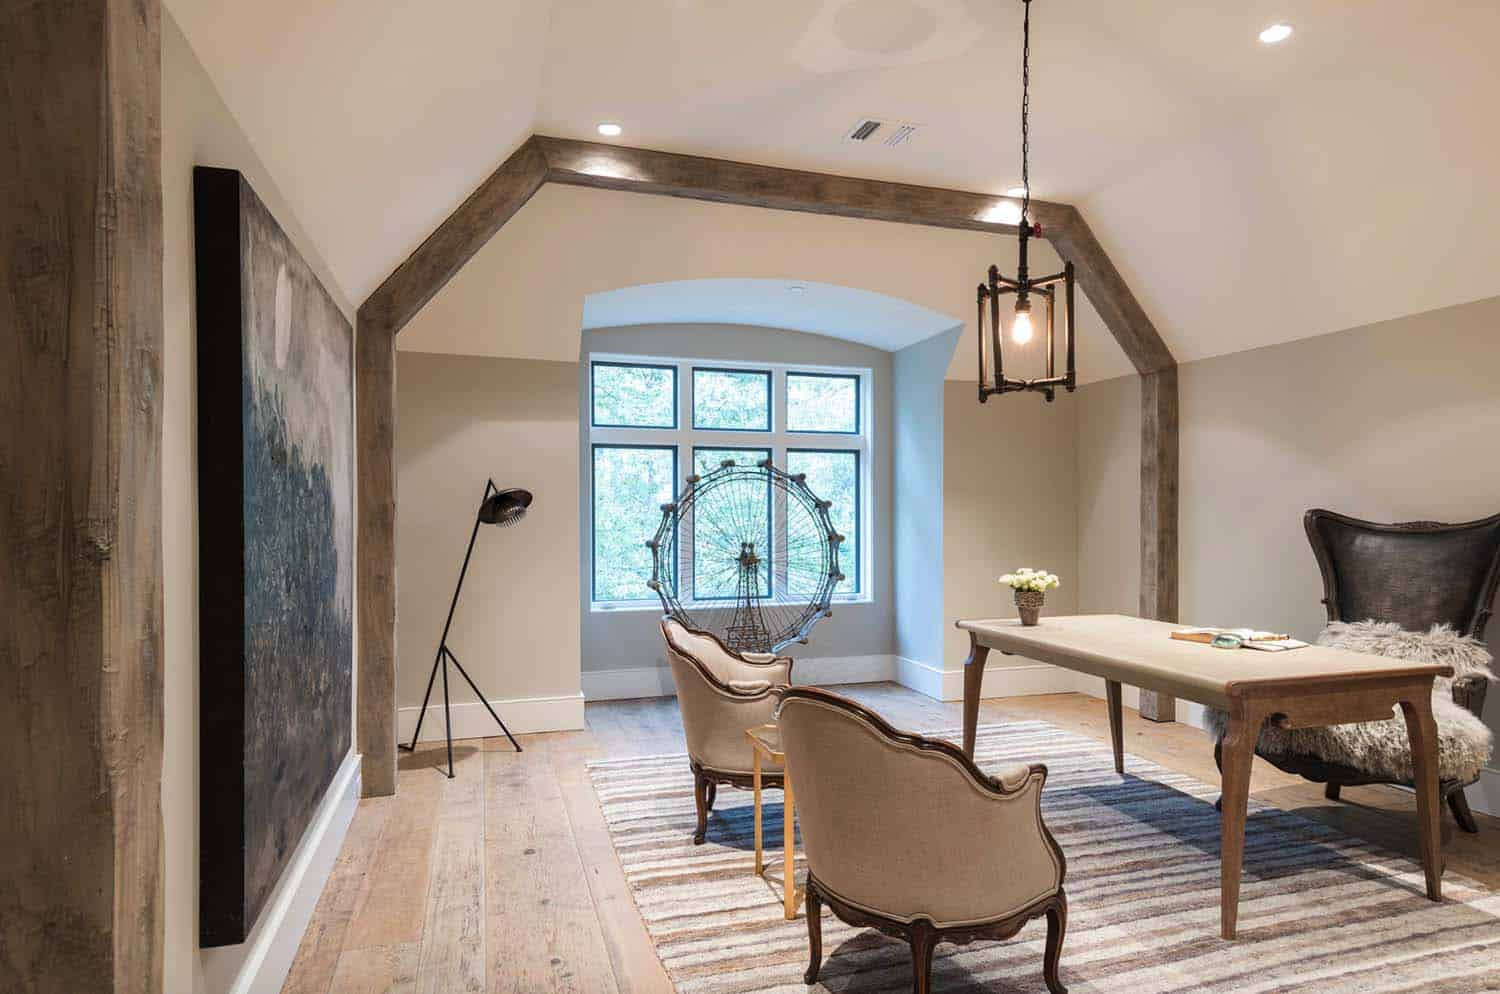 French Normandy Chateau-Bankston May Associates-28-1 Kindesign